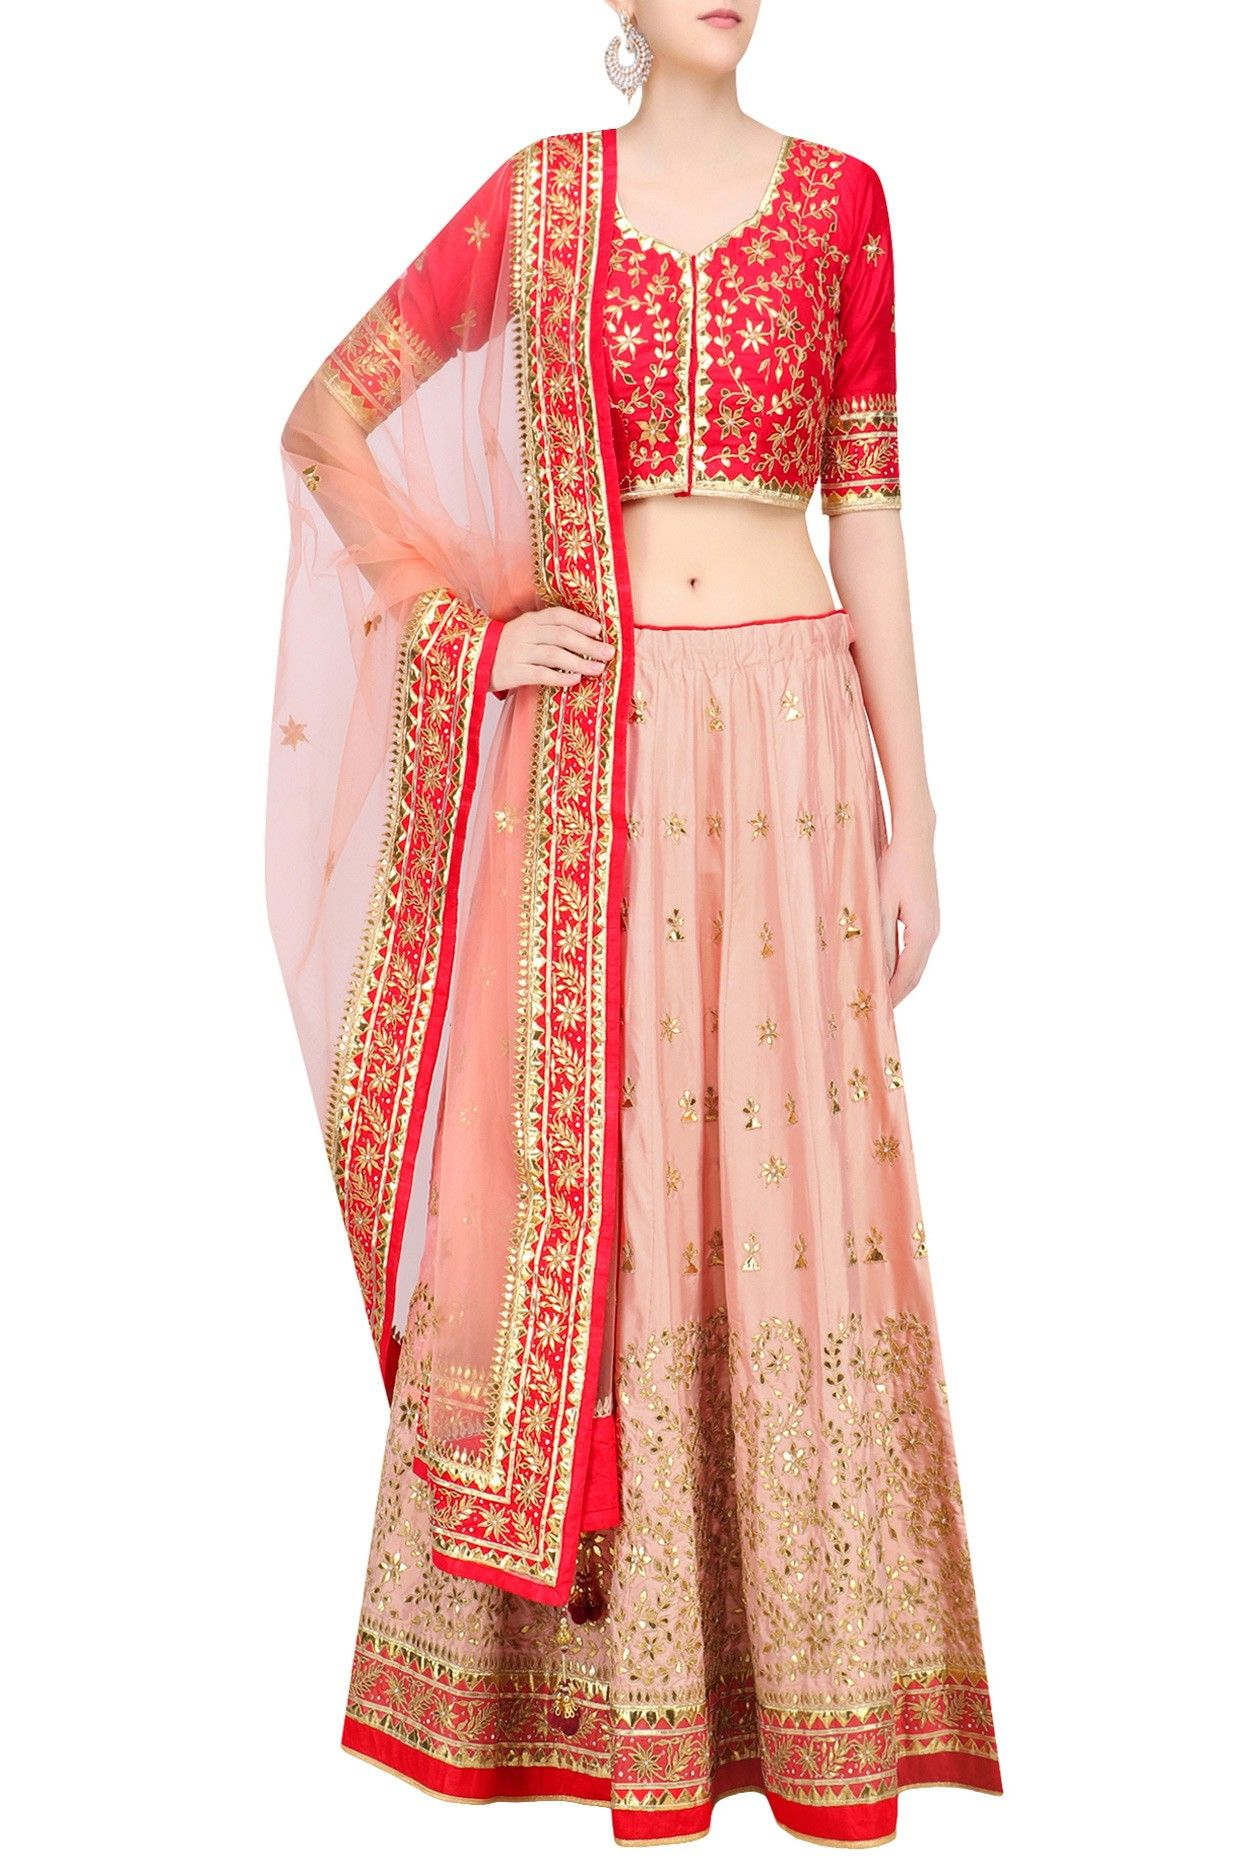 57ebe44aa3 Peach embroidered lehenga with red blouse and pale orange dupatta available  only at Pernia's Pop Up Shop.